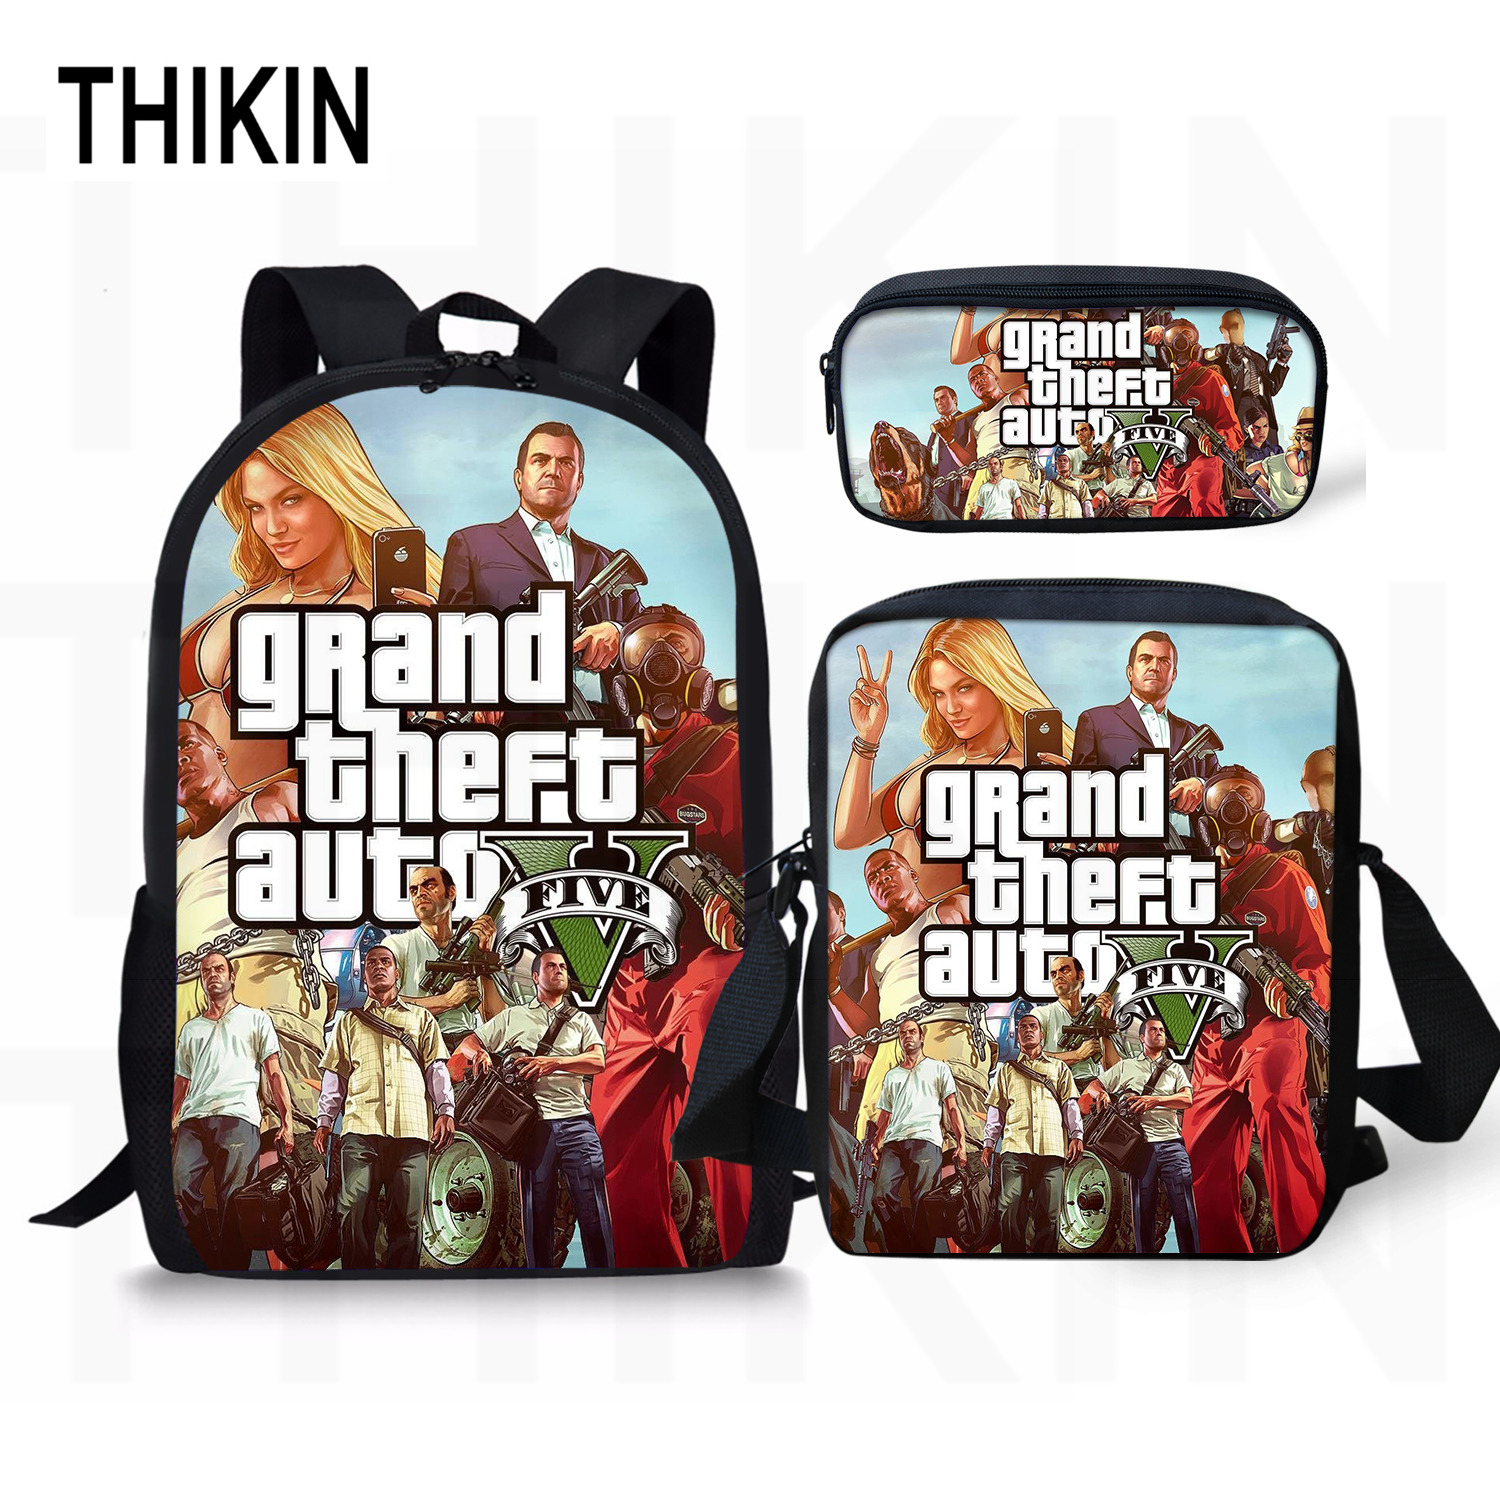 THIKIN Grand Theft Auto Printing Backpack For Teenage Boys Girls Student Fashion 3 PCS/SET School Bags GTA V Children Daily Bags